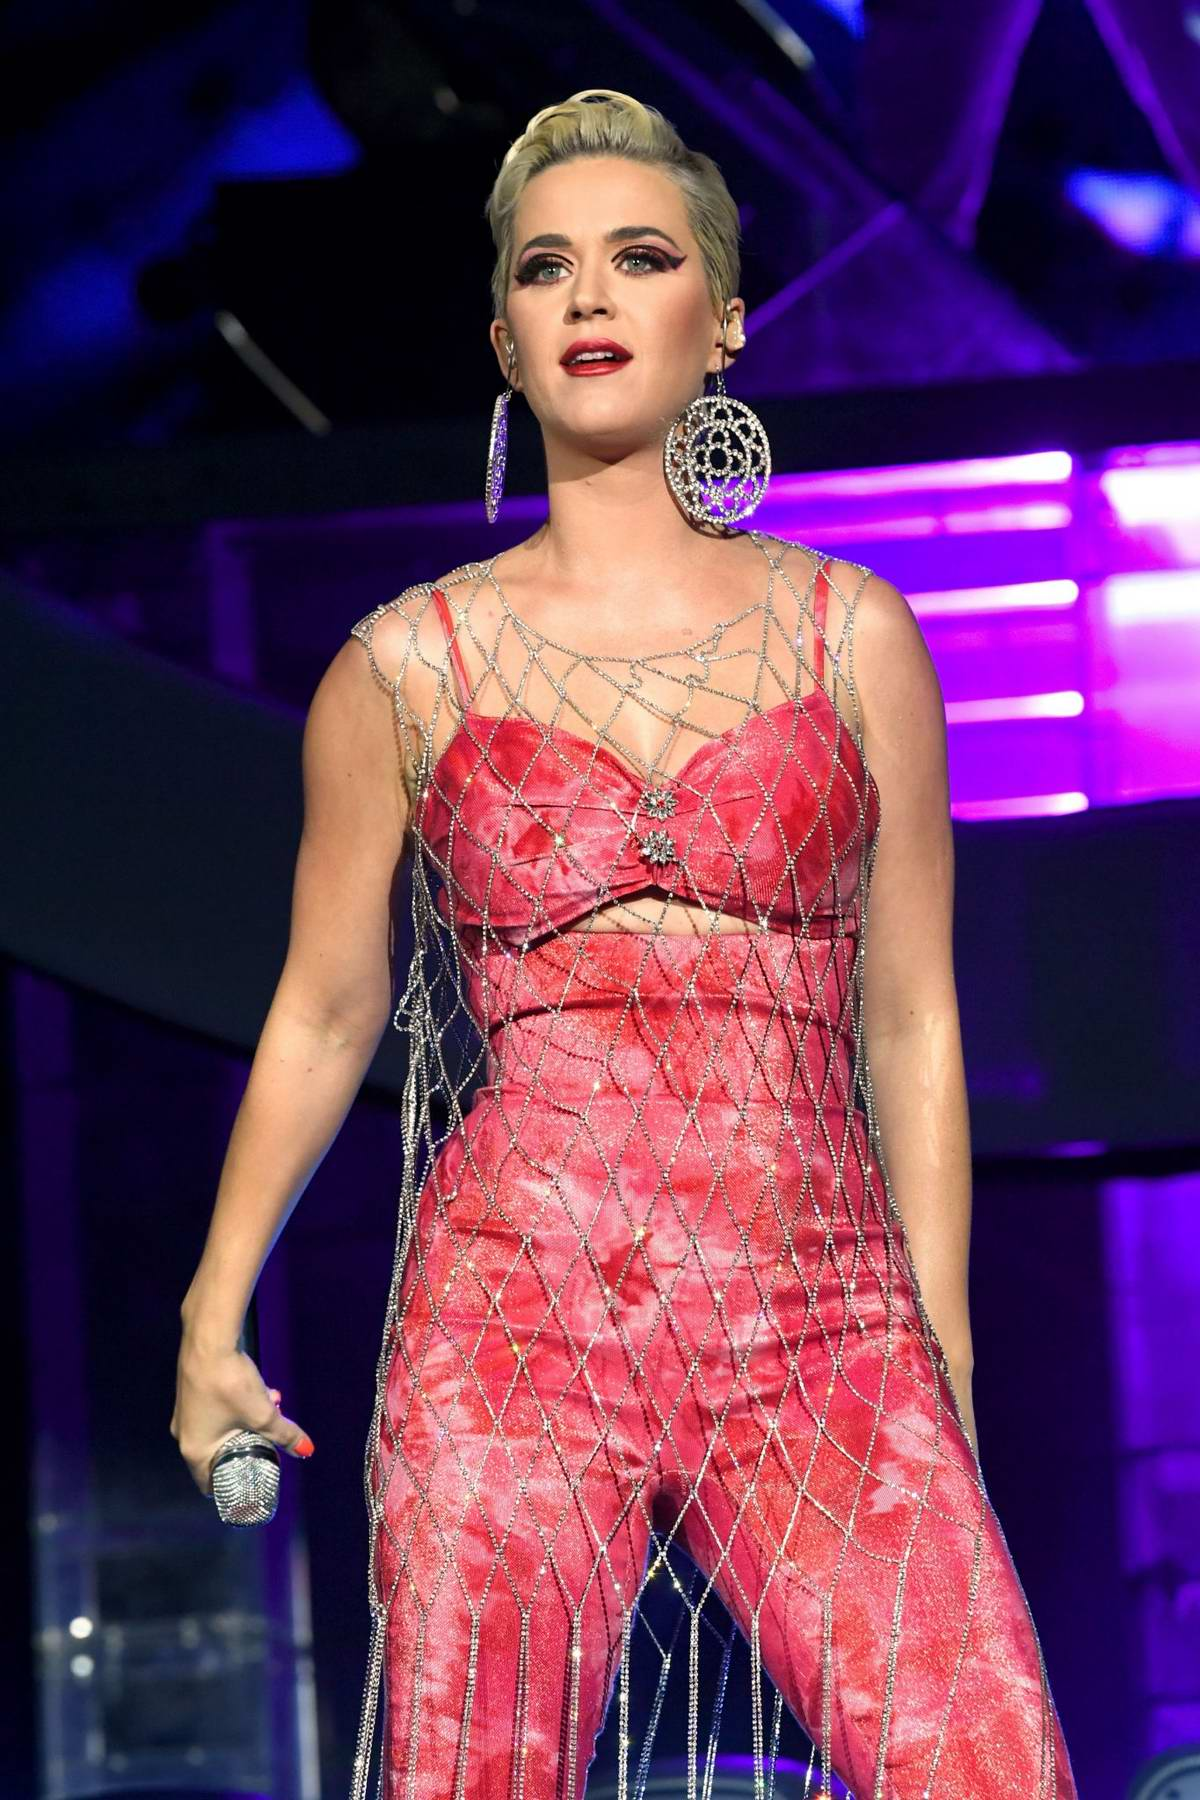 Katy Perry performs onstage at 2019 Coachella Valley Music and Arts Festival in Indio, California